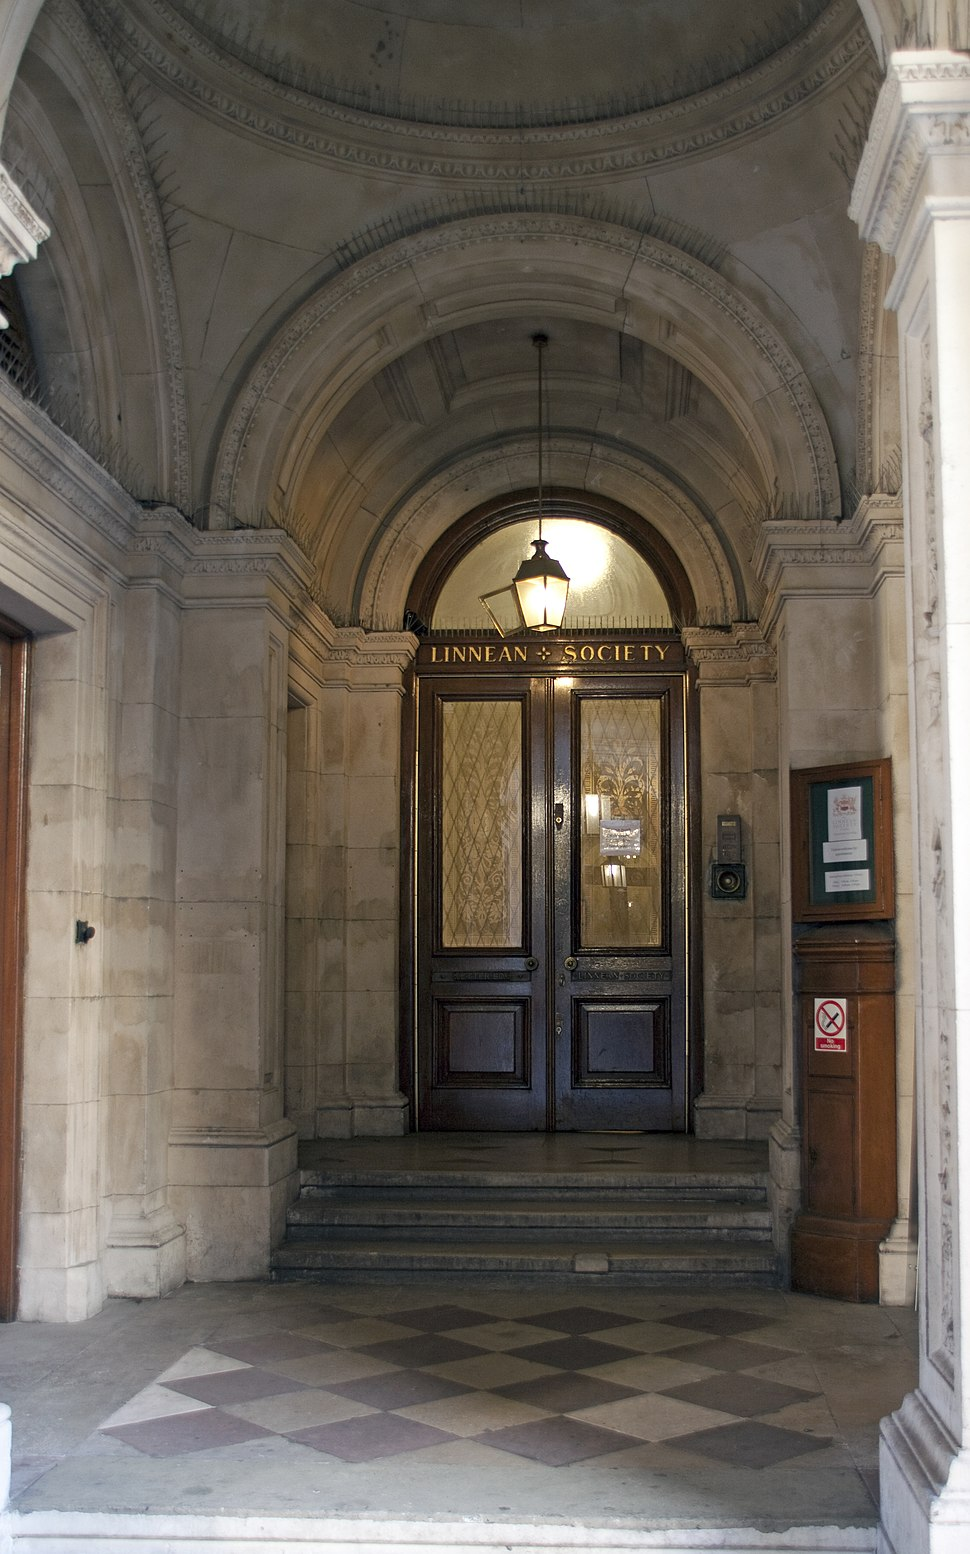 Entrance to the Linnean Society building, Piccadilly